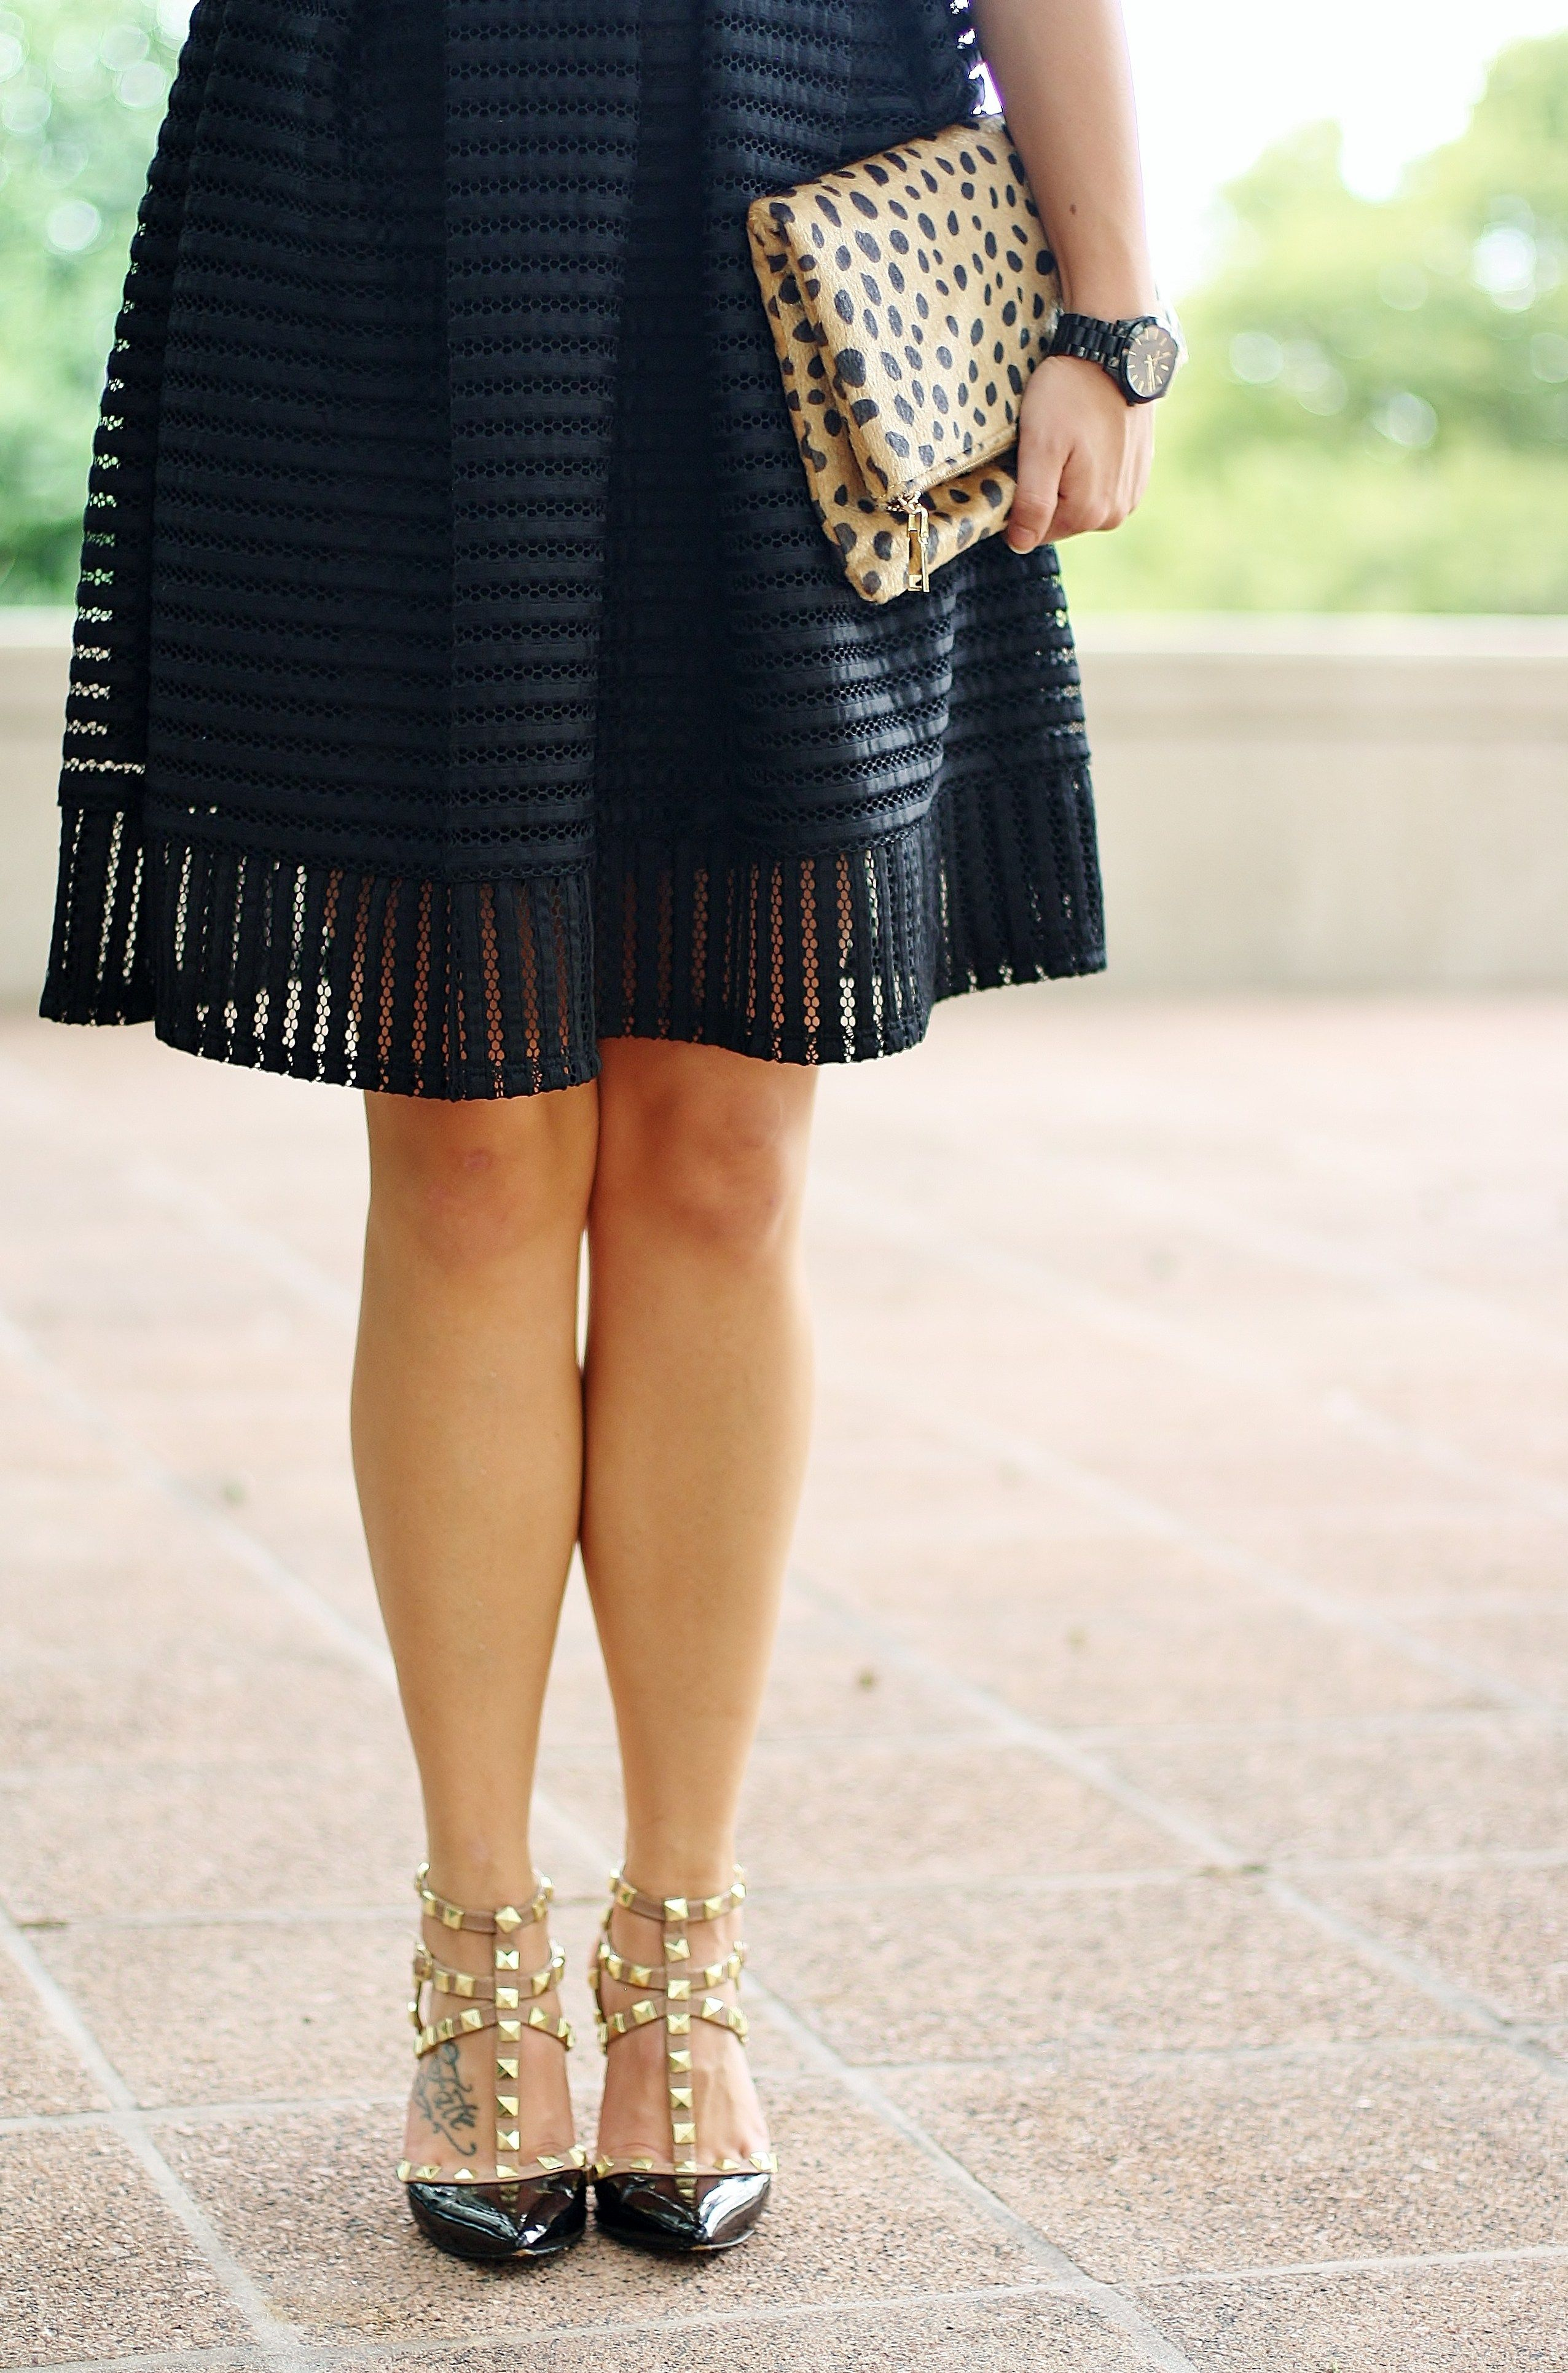 Black and white date night outift; leopard Clare V clutch; black rockstud pumps; black and white outfit